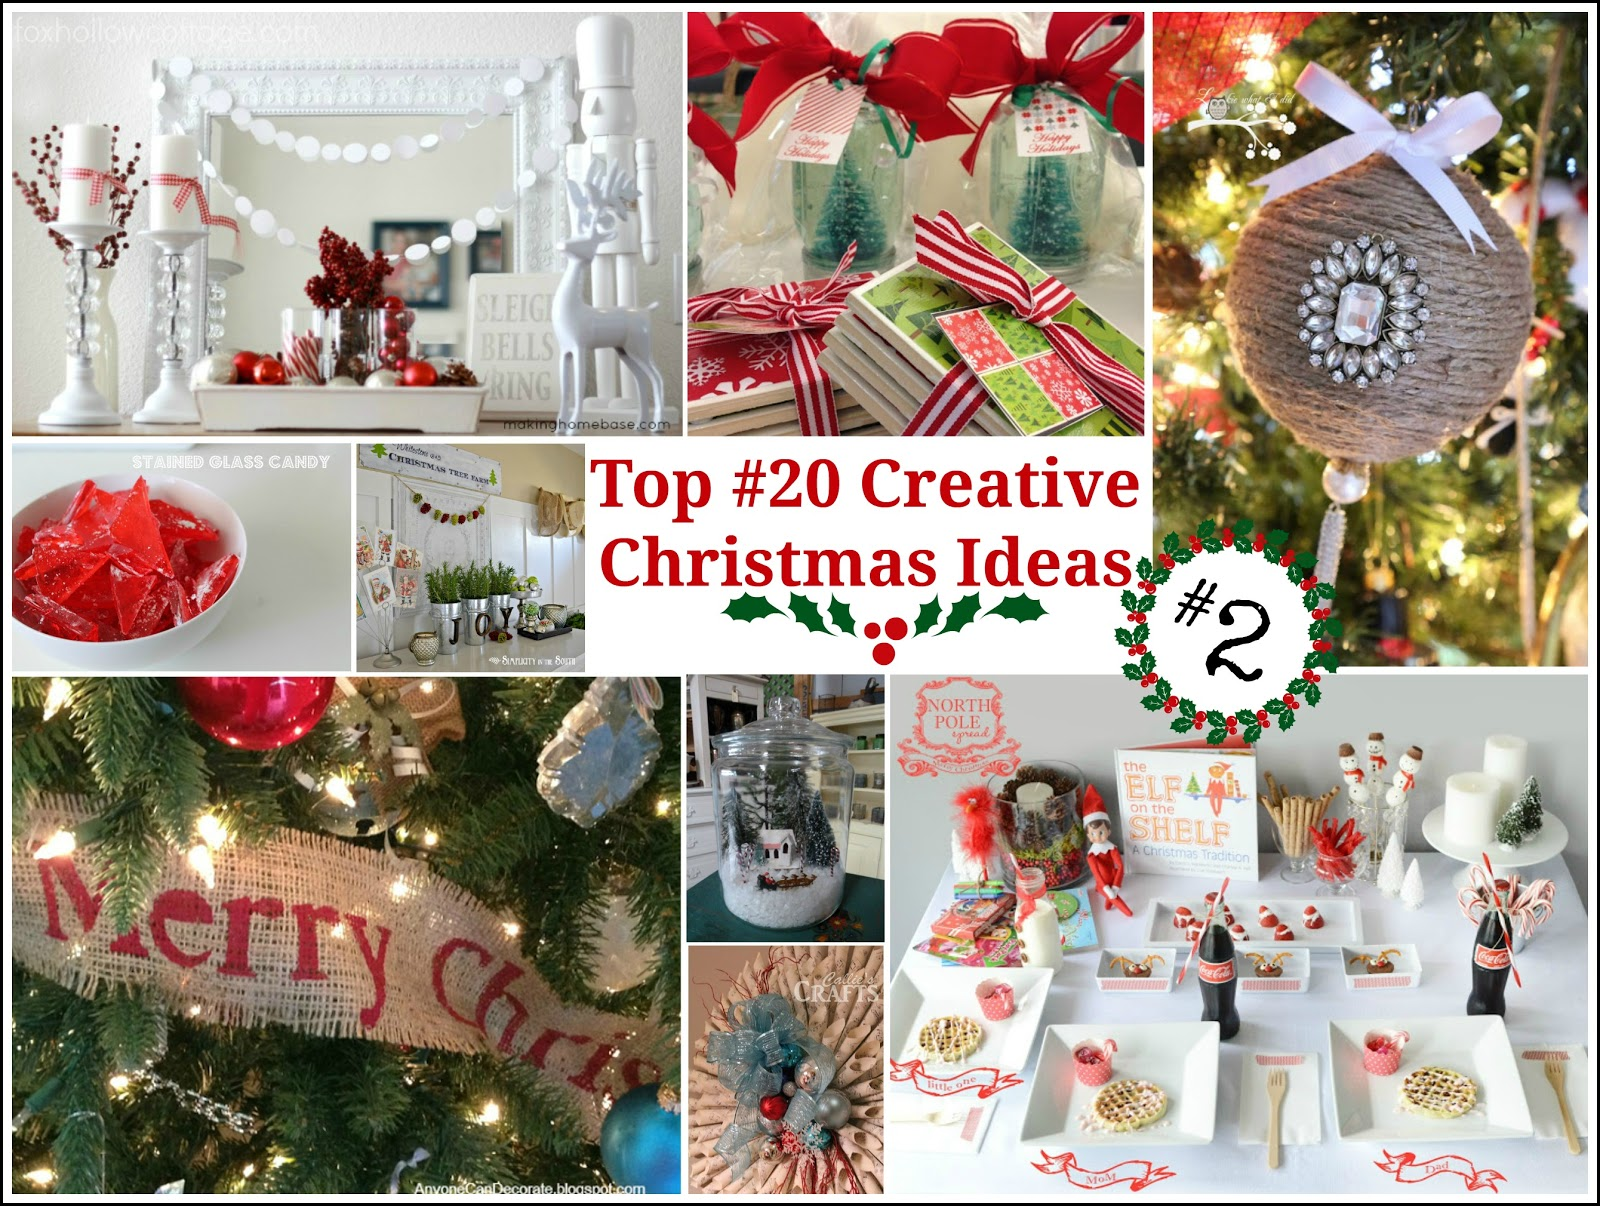 & Decorating With Urns Christmas Edition - Fox Hollow Cottage